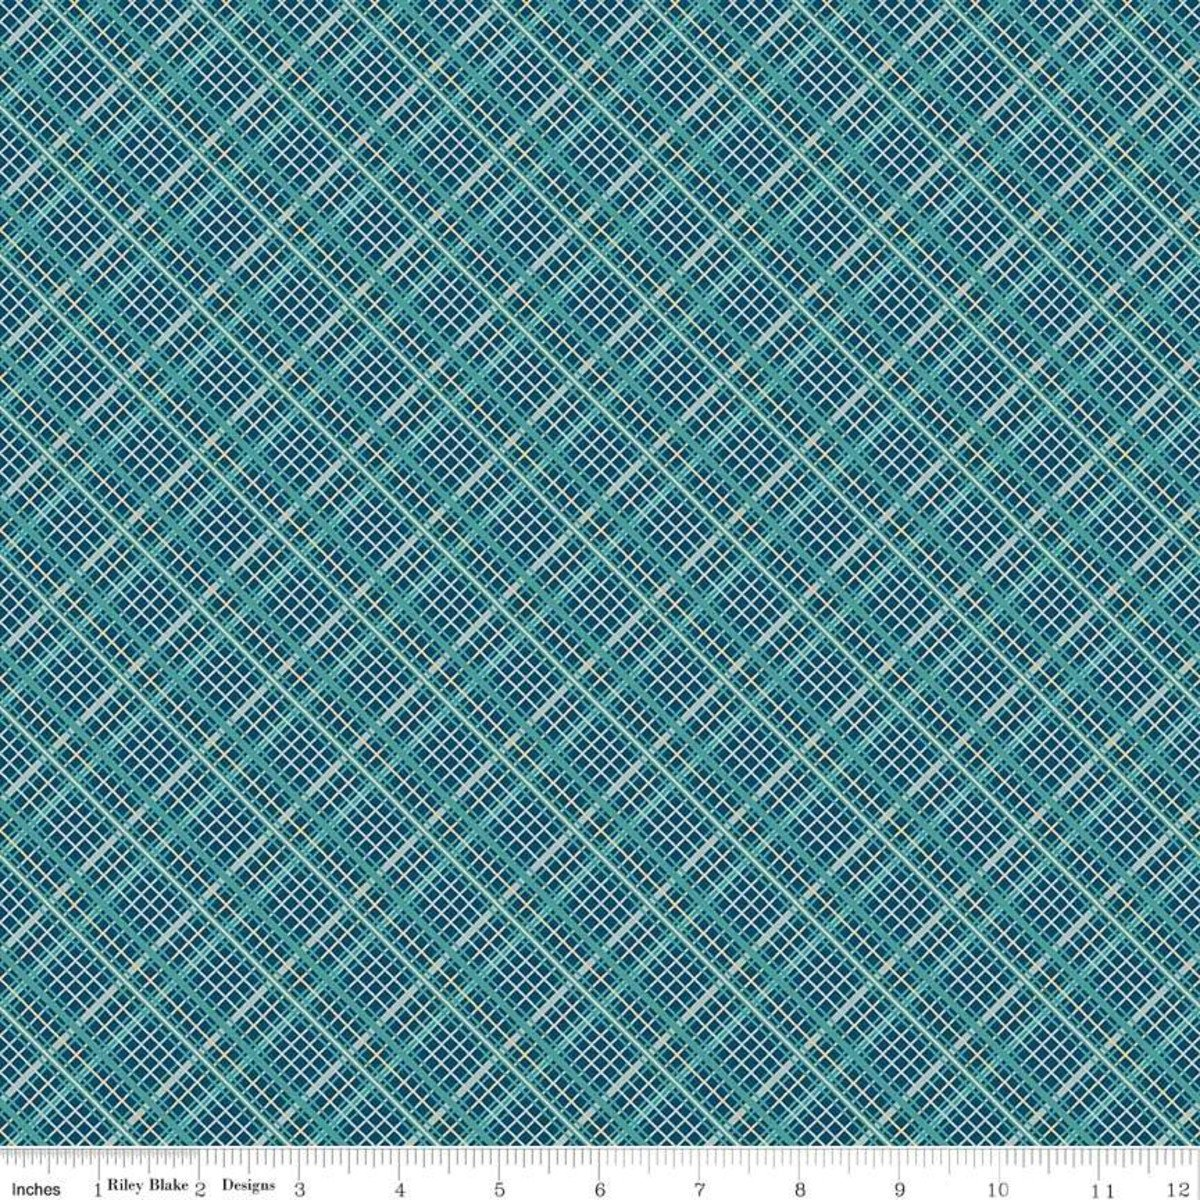 Plaid Teal from Offshore 2 by Deena Rutter for Riley Blake Designs - copy